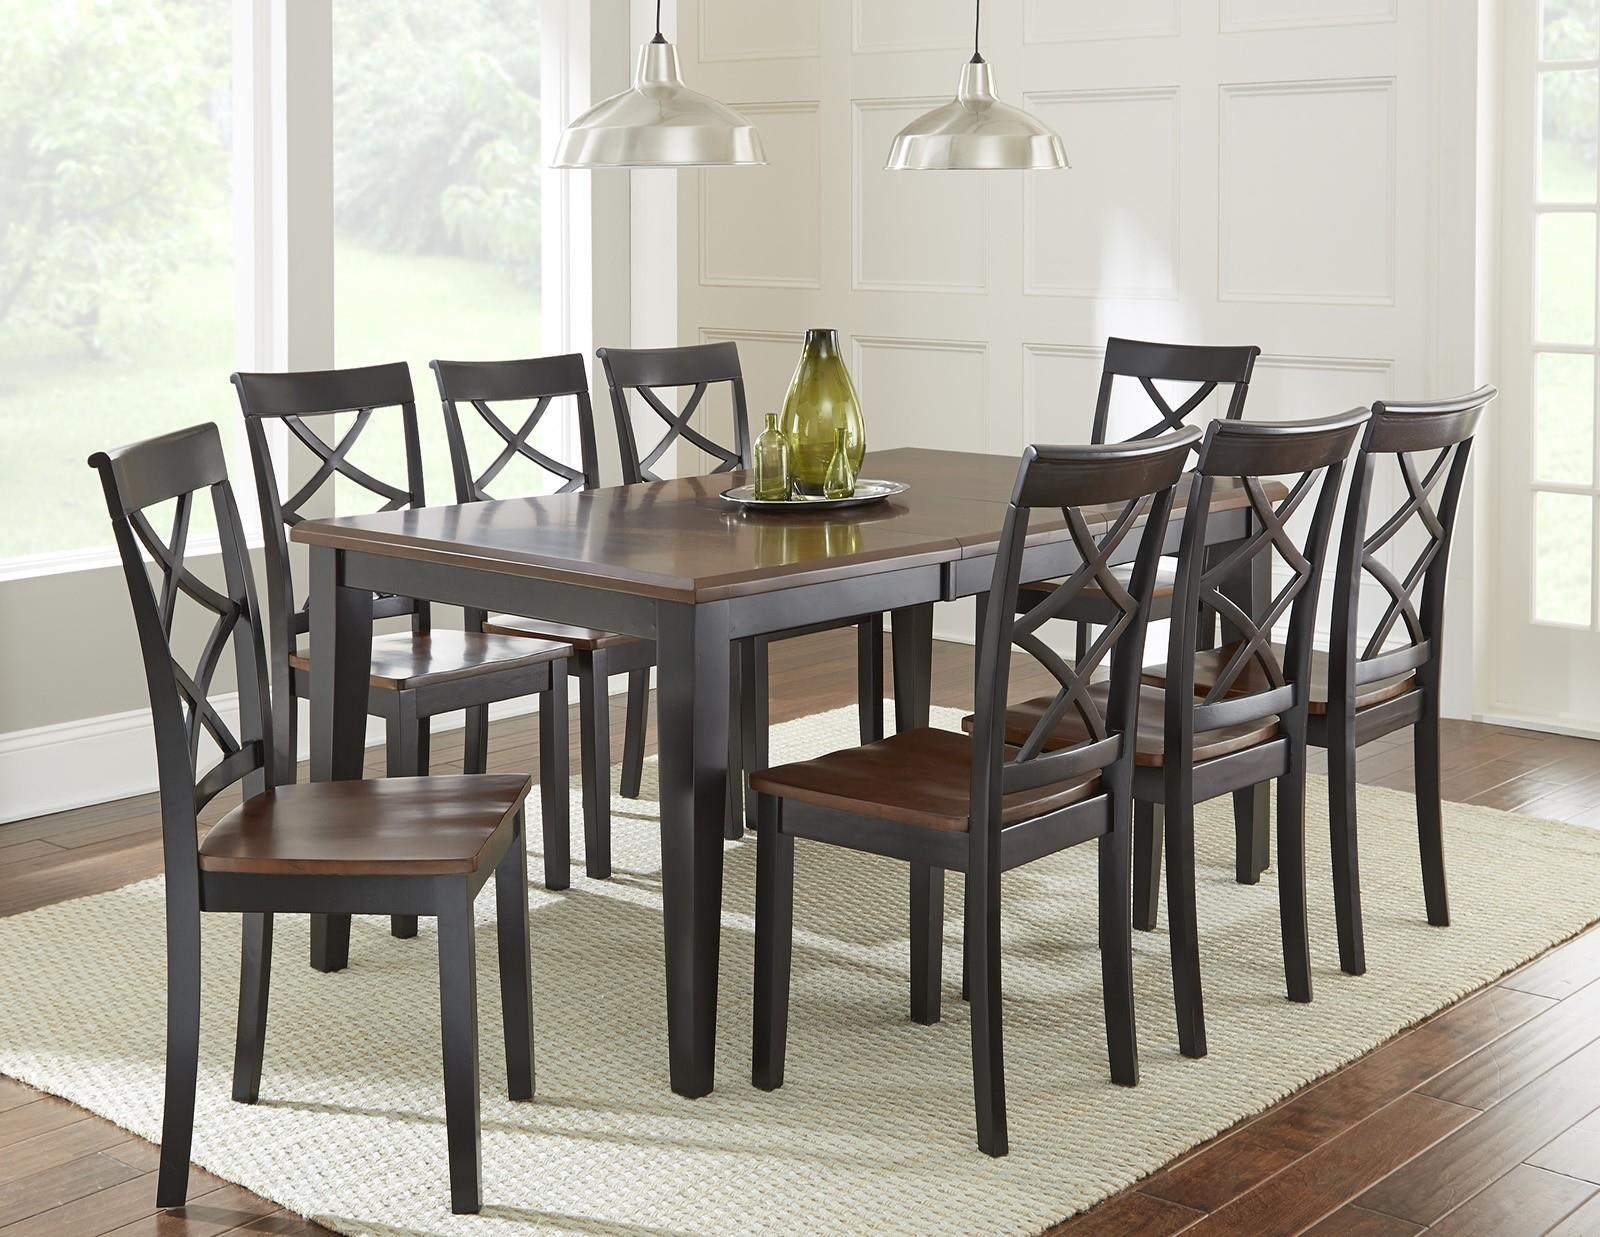 steve silver rani 9 piece dining set with two tone brown/black top